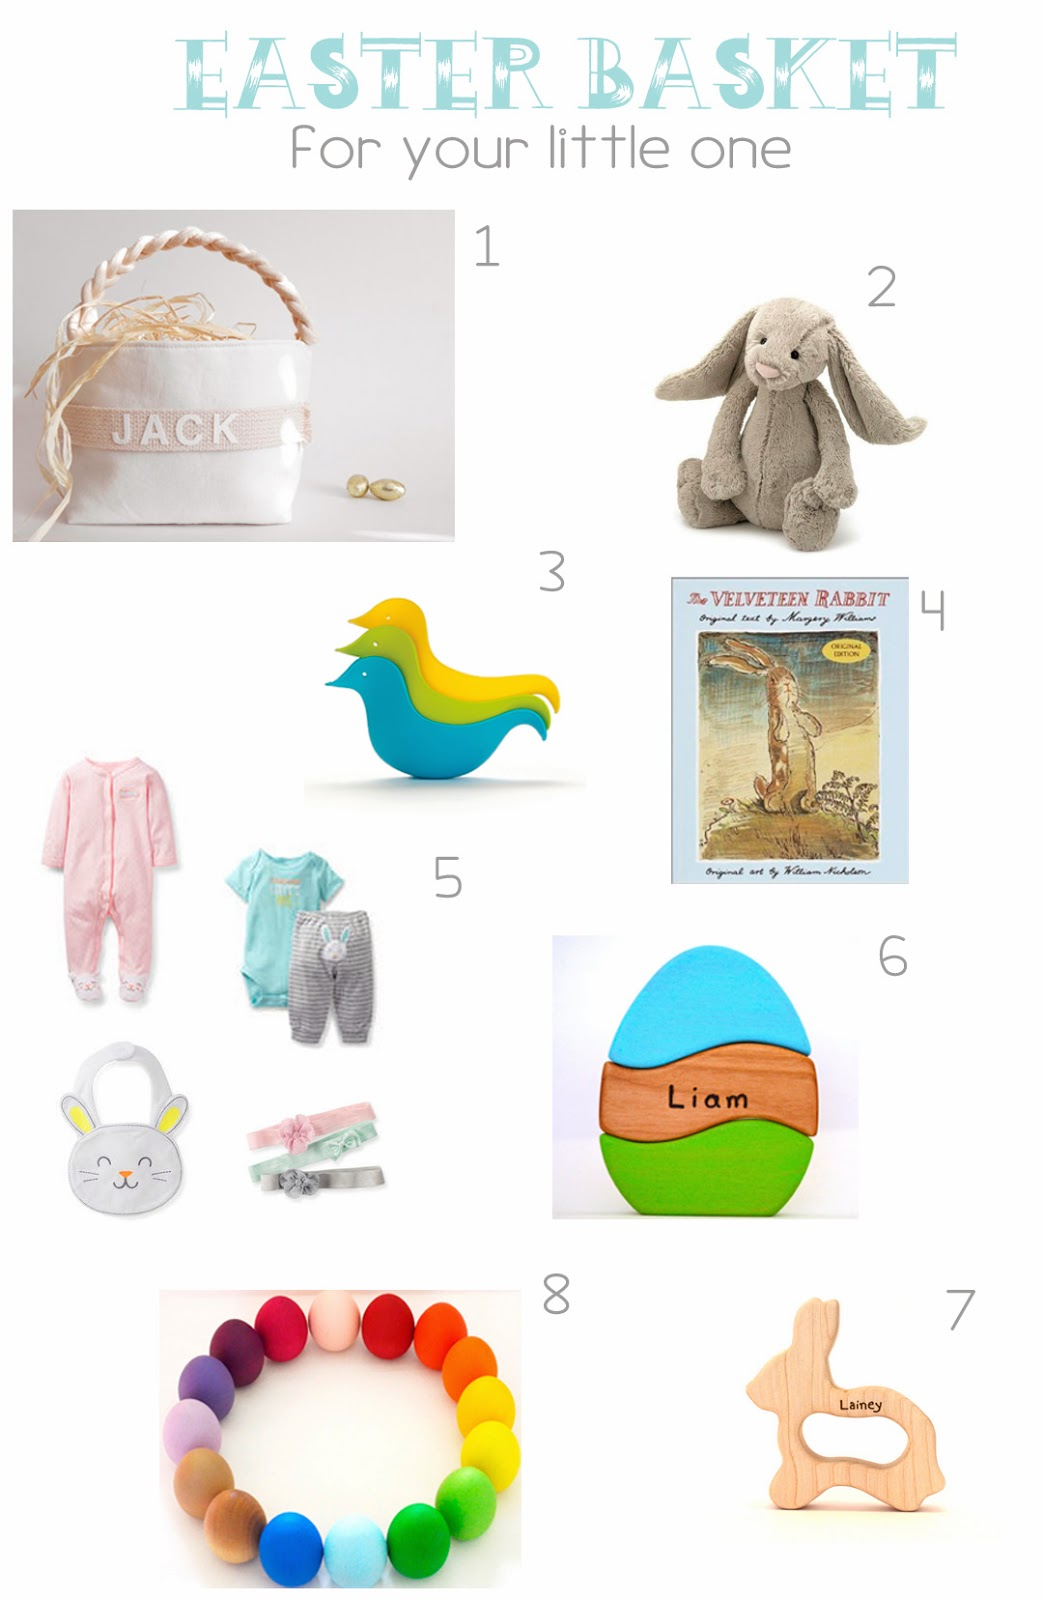 Sweet little nursery babys first easter basket ideas babys first easter basket ideas negle Image collections